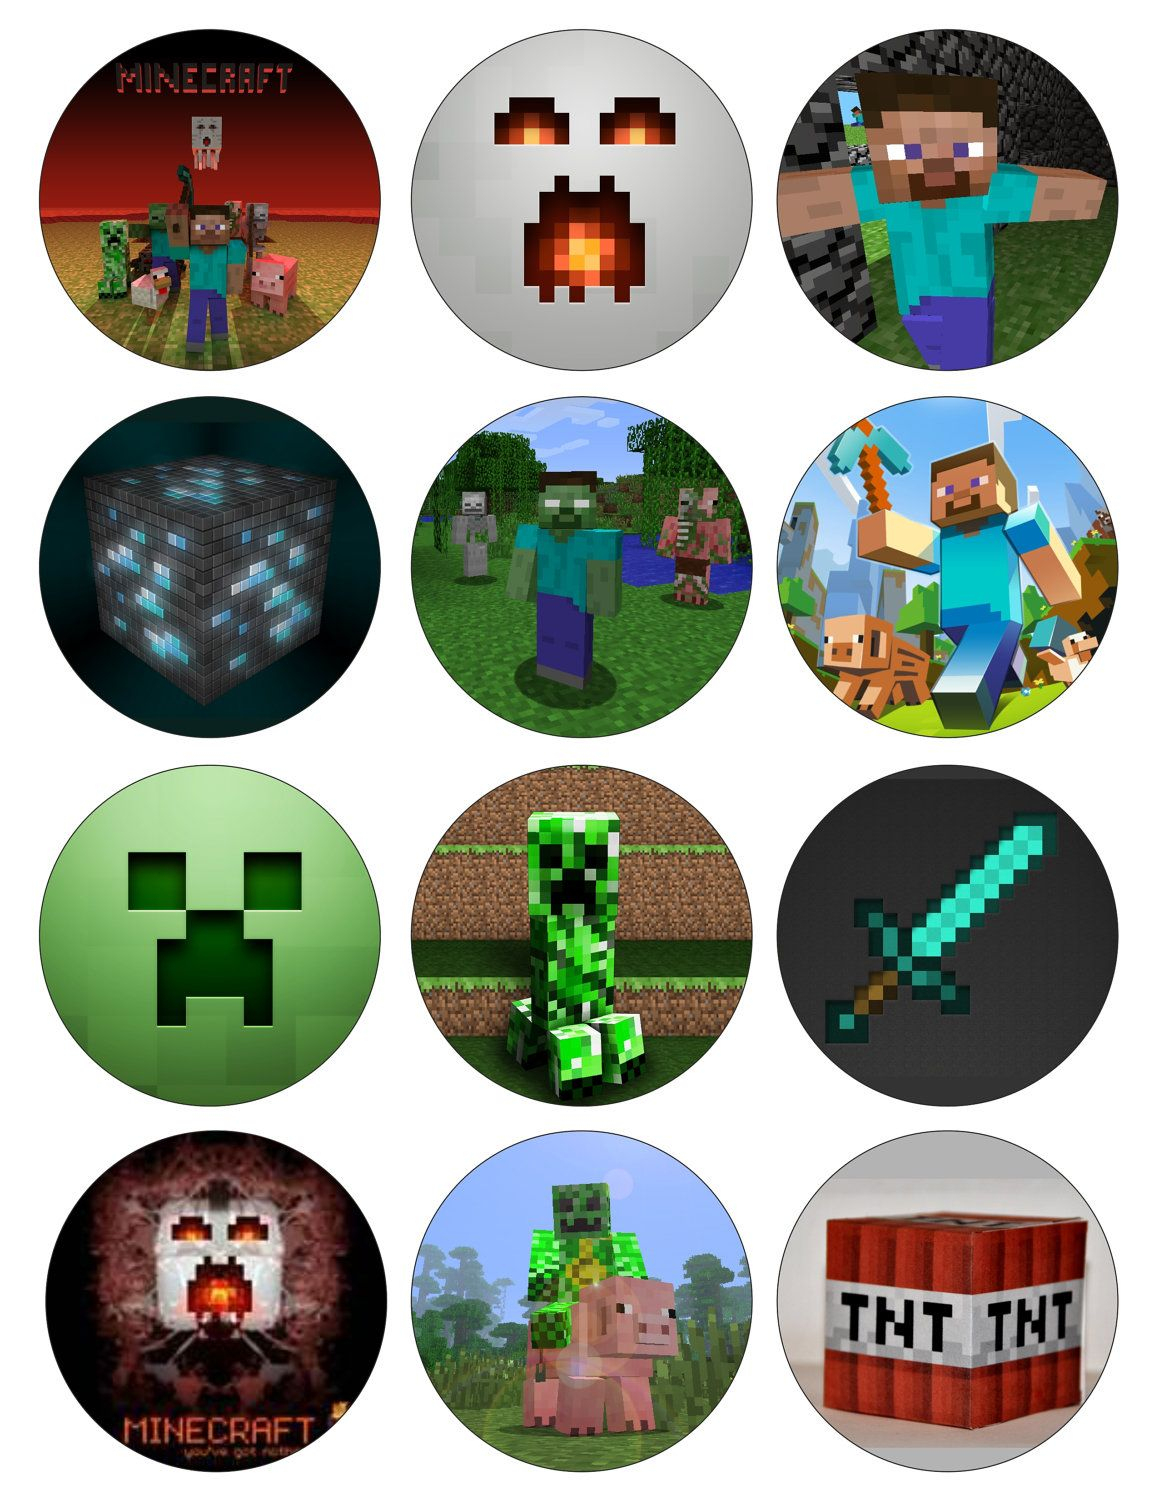 Free Printable Minecraft Cupcake Toppers | Minecraft Cupcakes - Free Printable Minecraft Cupcake Toppers And Wrappers